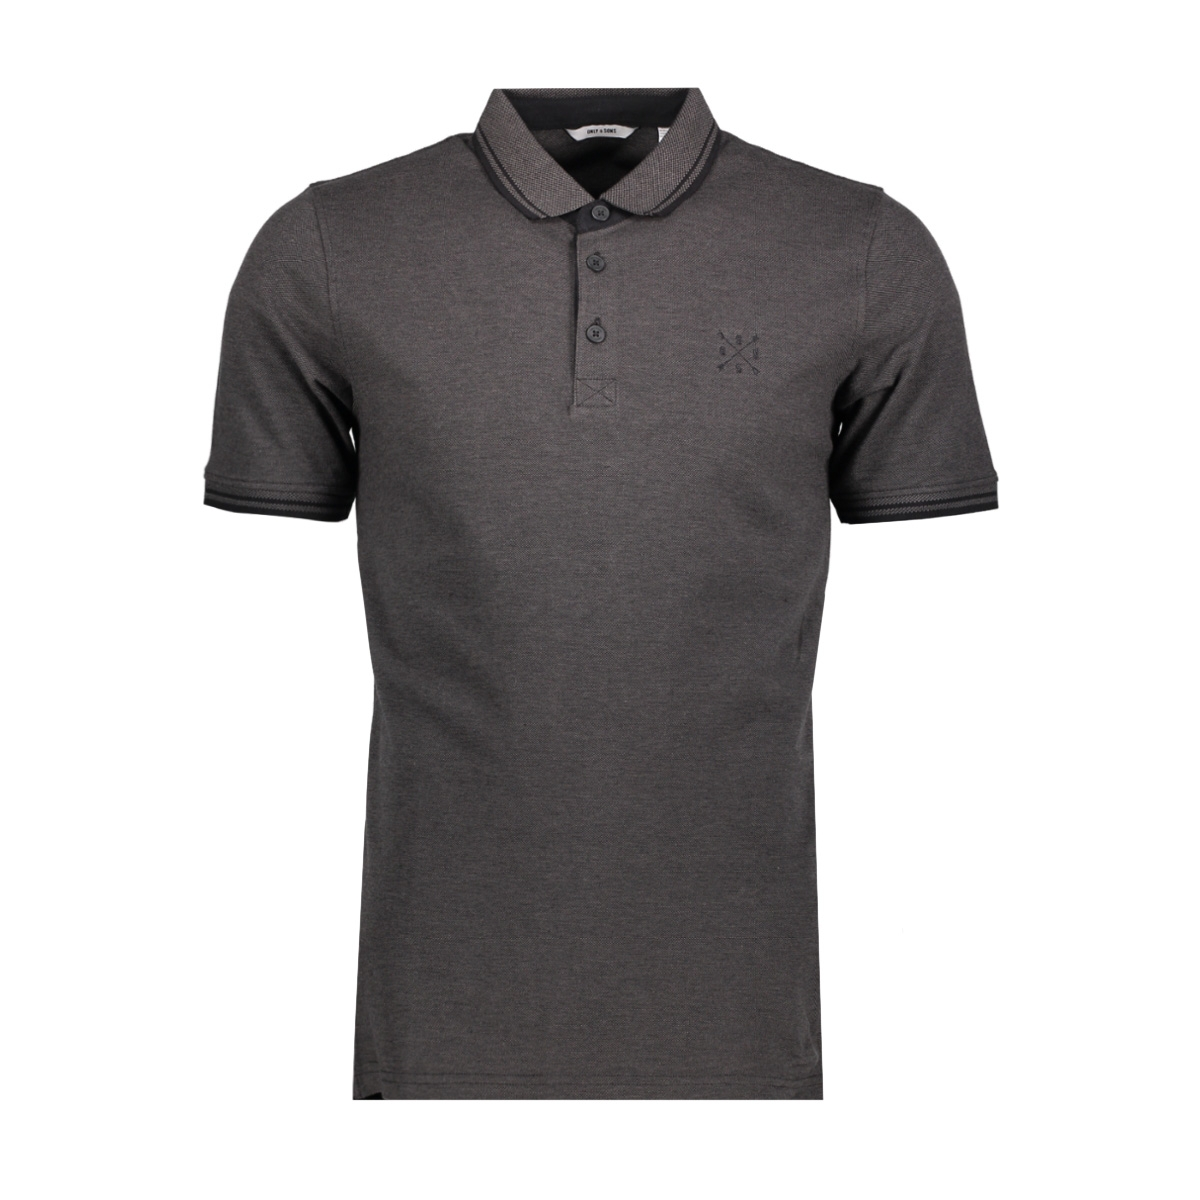 onsstan ss fitted polo tee 6560 n 22011349 only & sons polo black